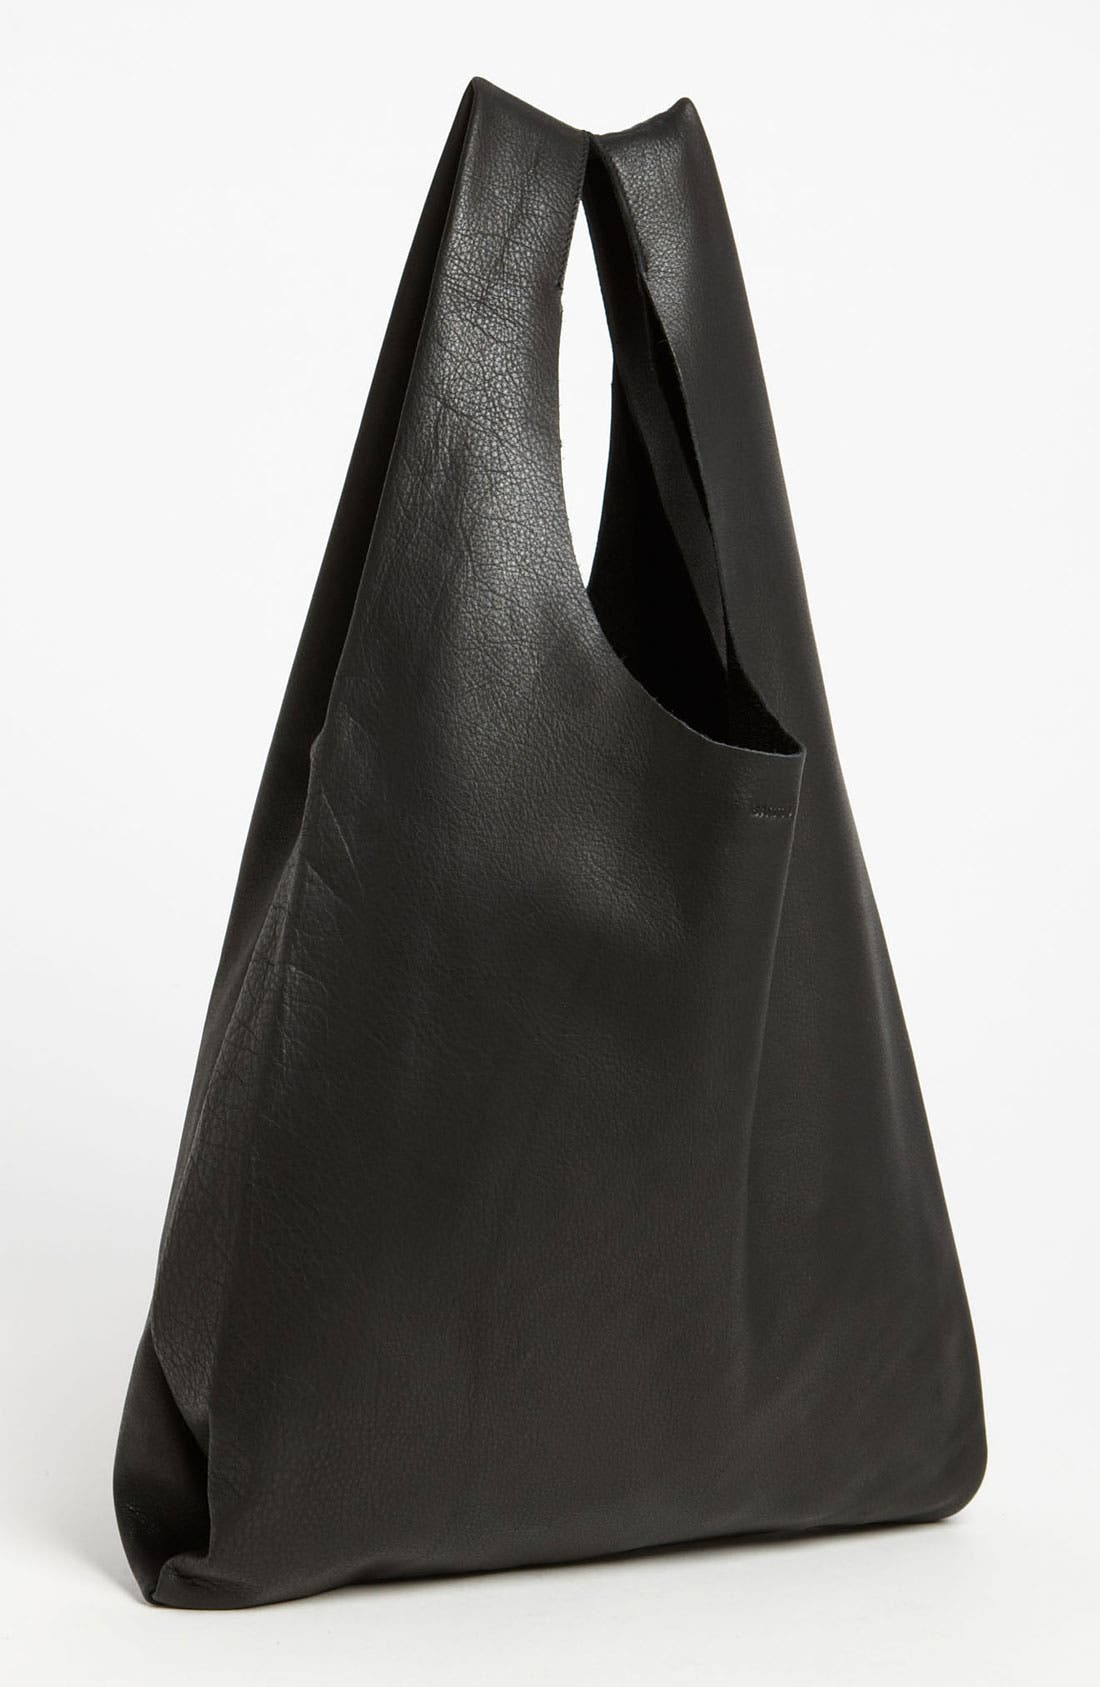 Main Image - Baggu® 'Medium' Leather Shoulder Bag